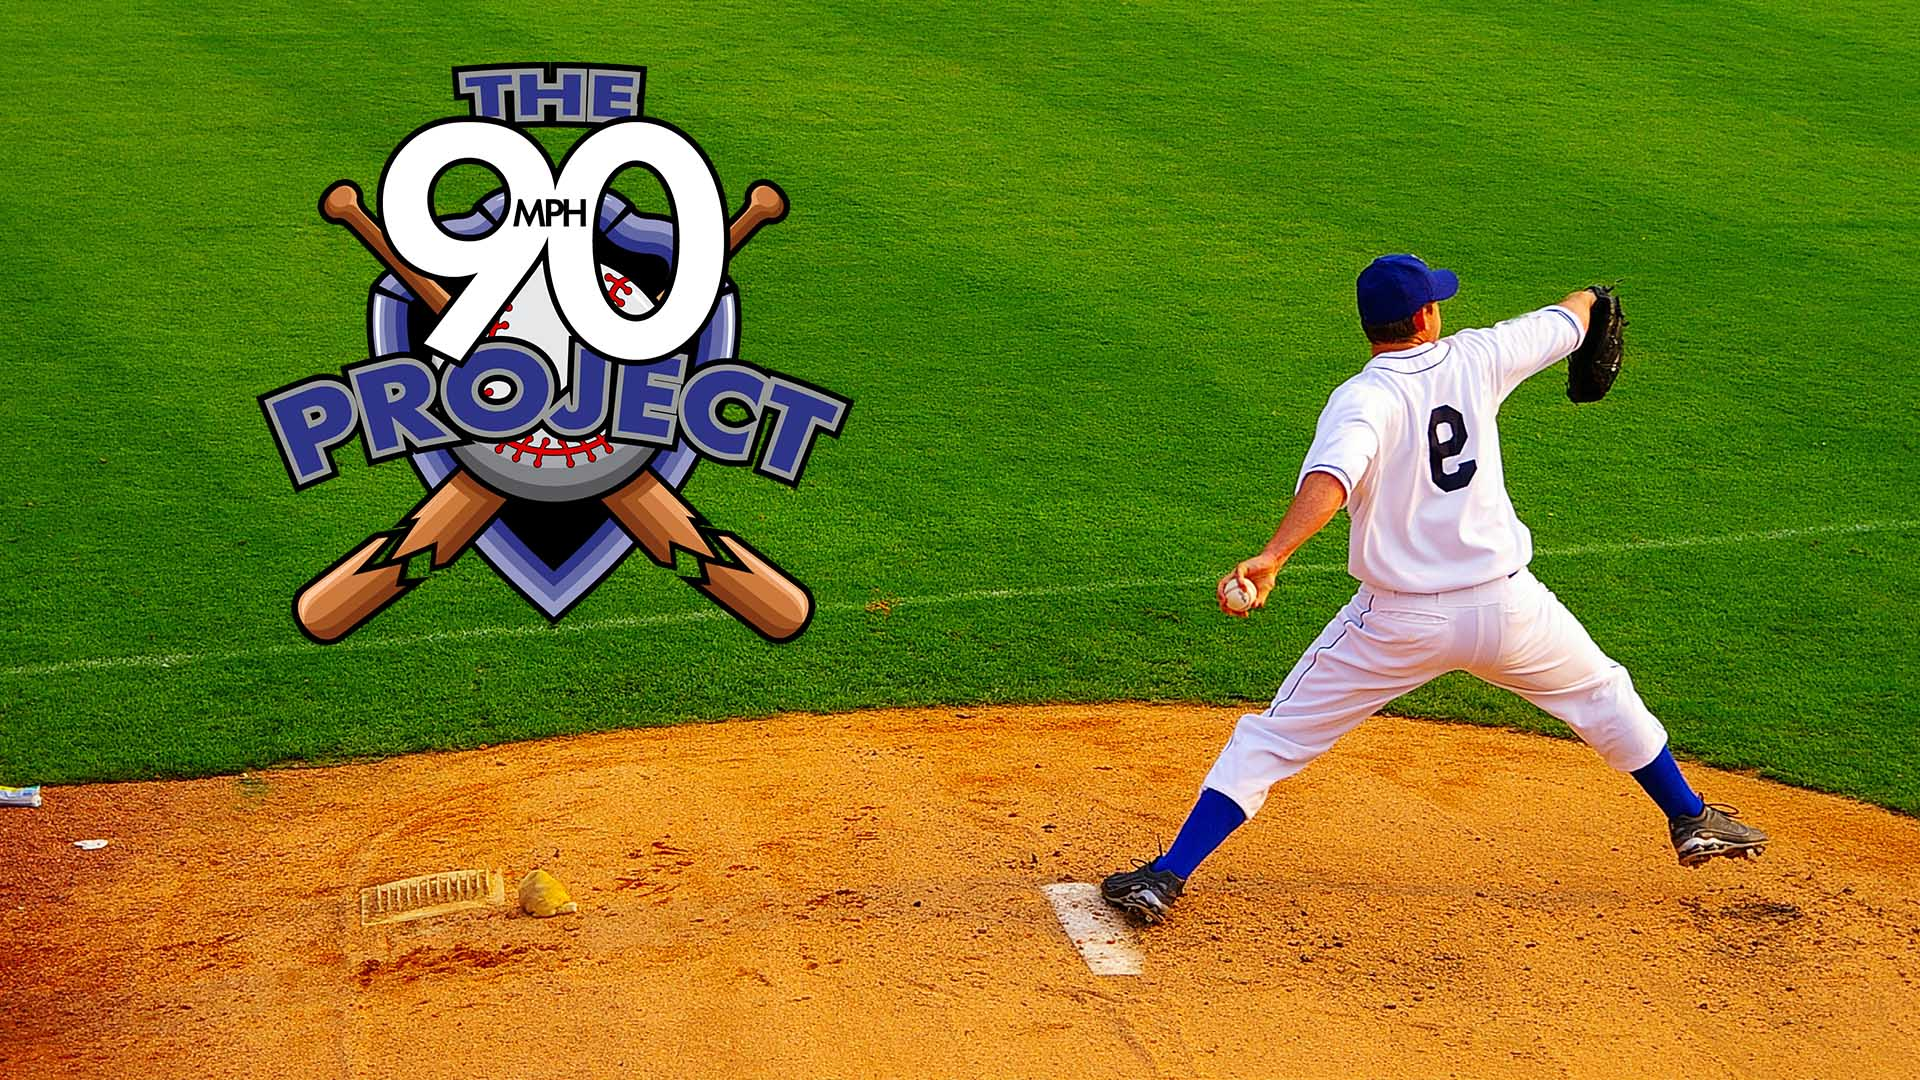 The 90 Project - A Pitching Velocity Program Featuring 4D Motion